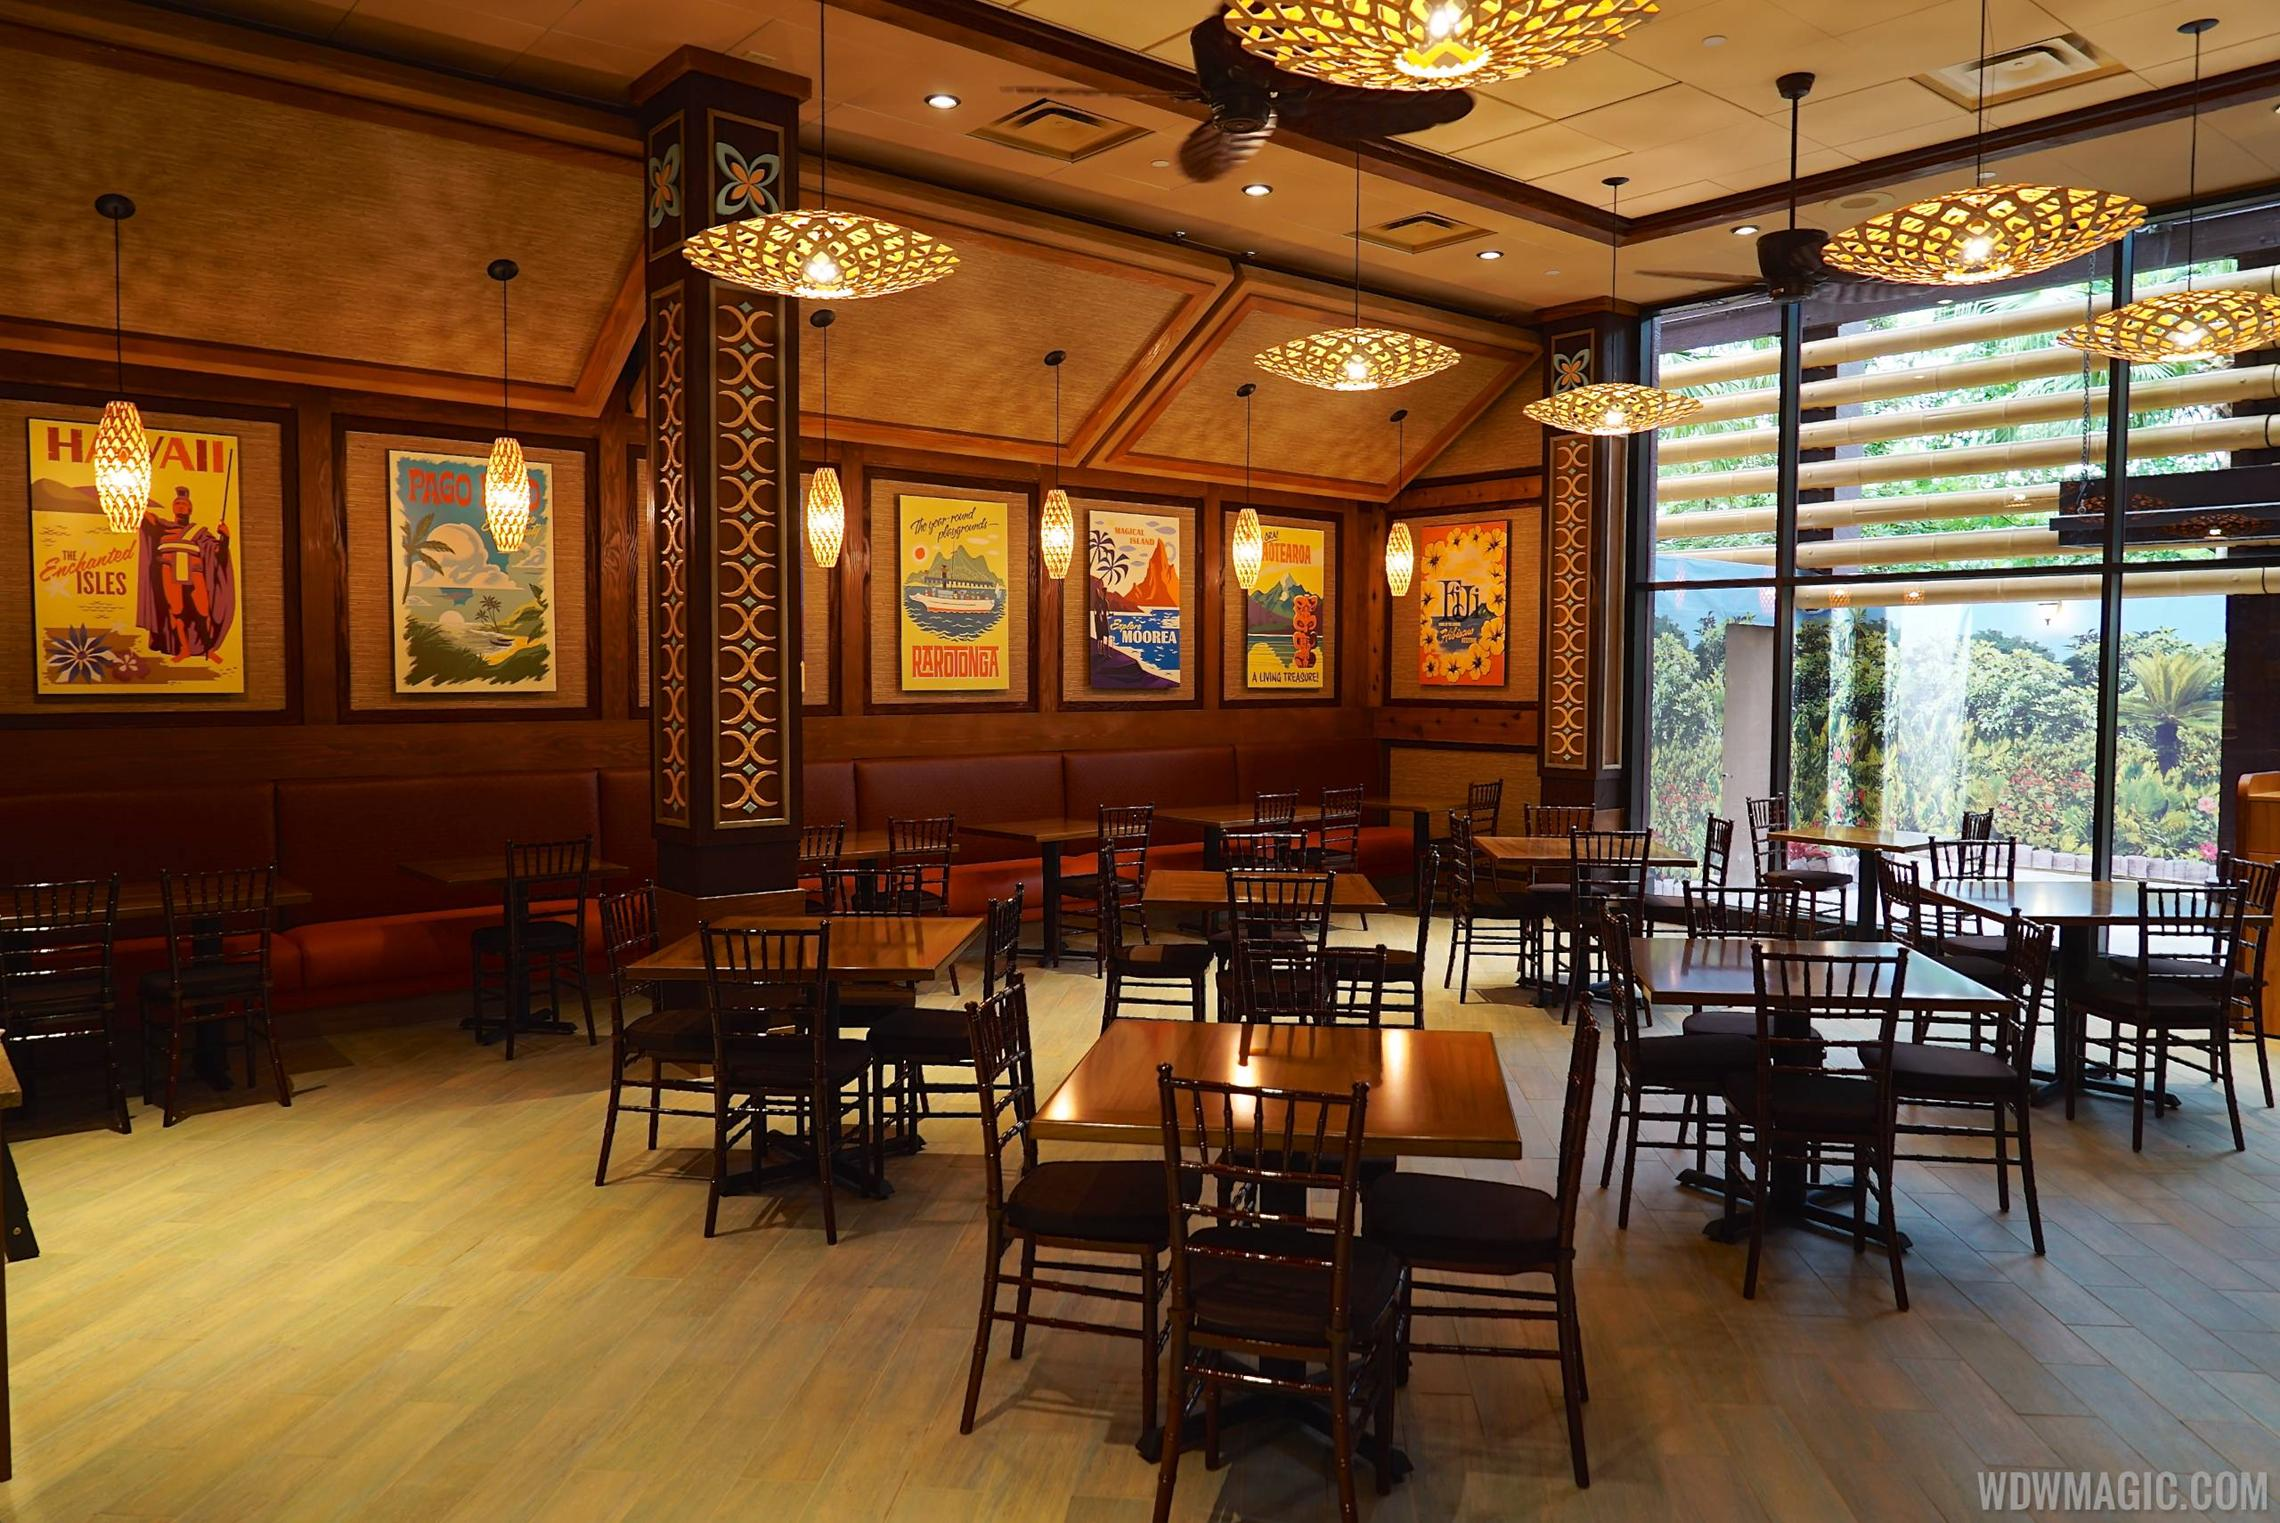 Captain Cook's - Main Dining Room